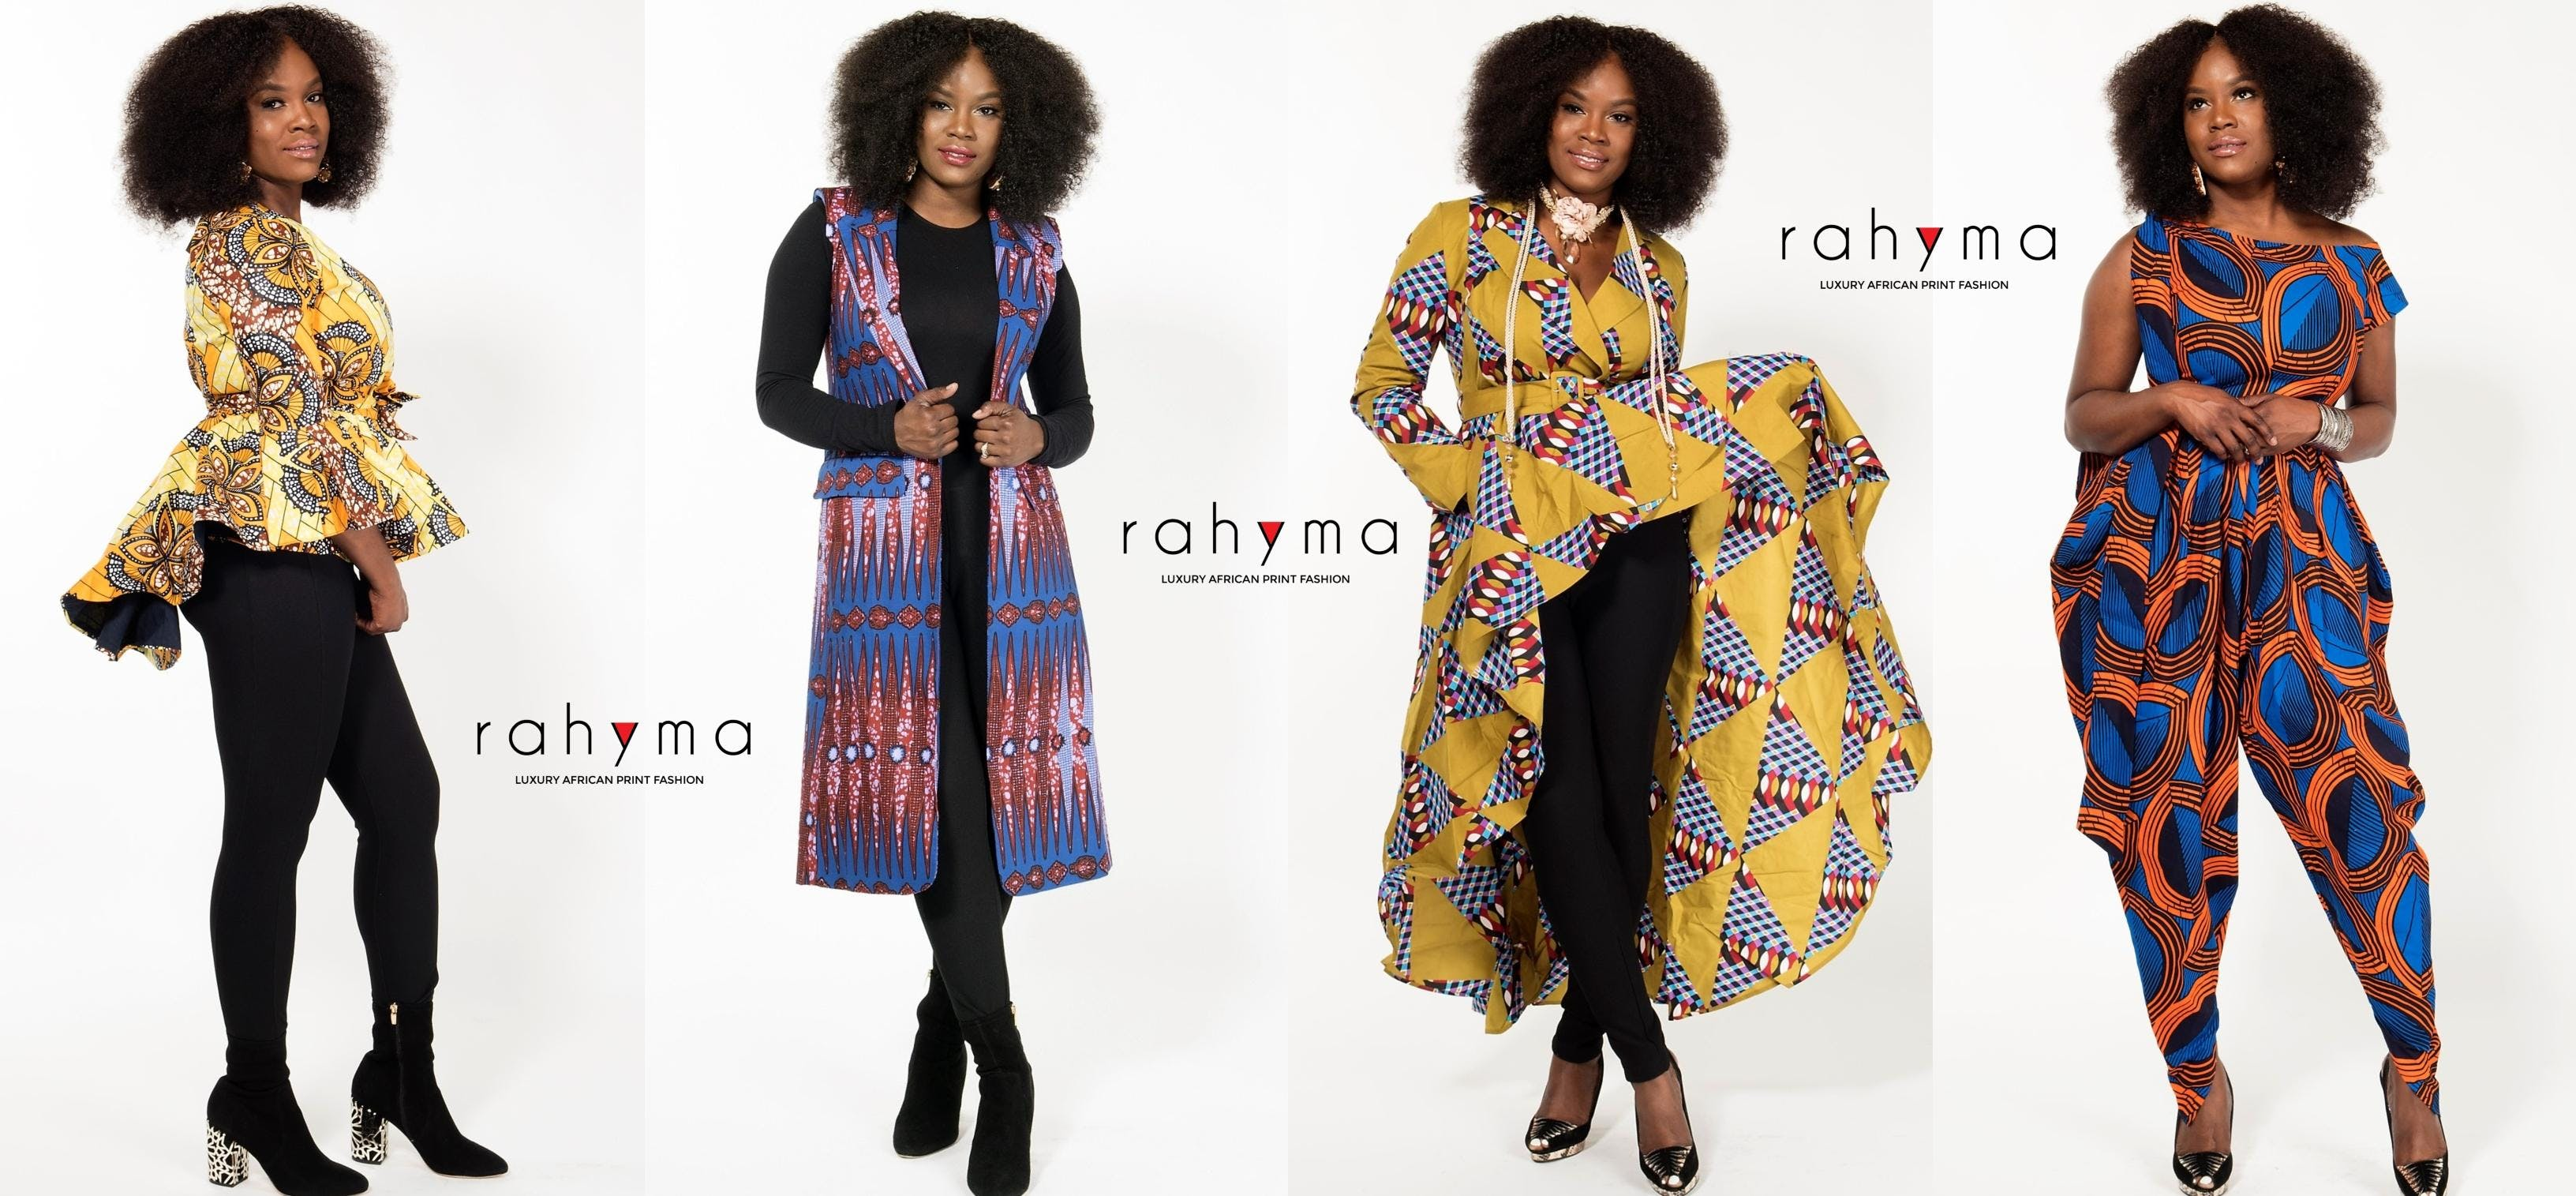 RAHYMA BLACK HISTORY POP-UP SHOP PHILLY